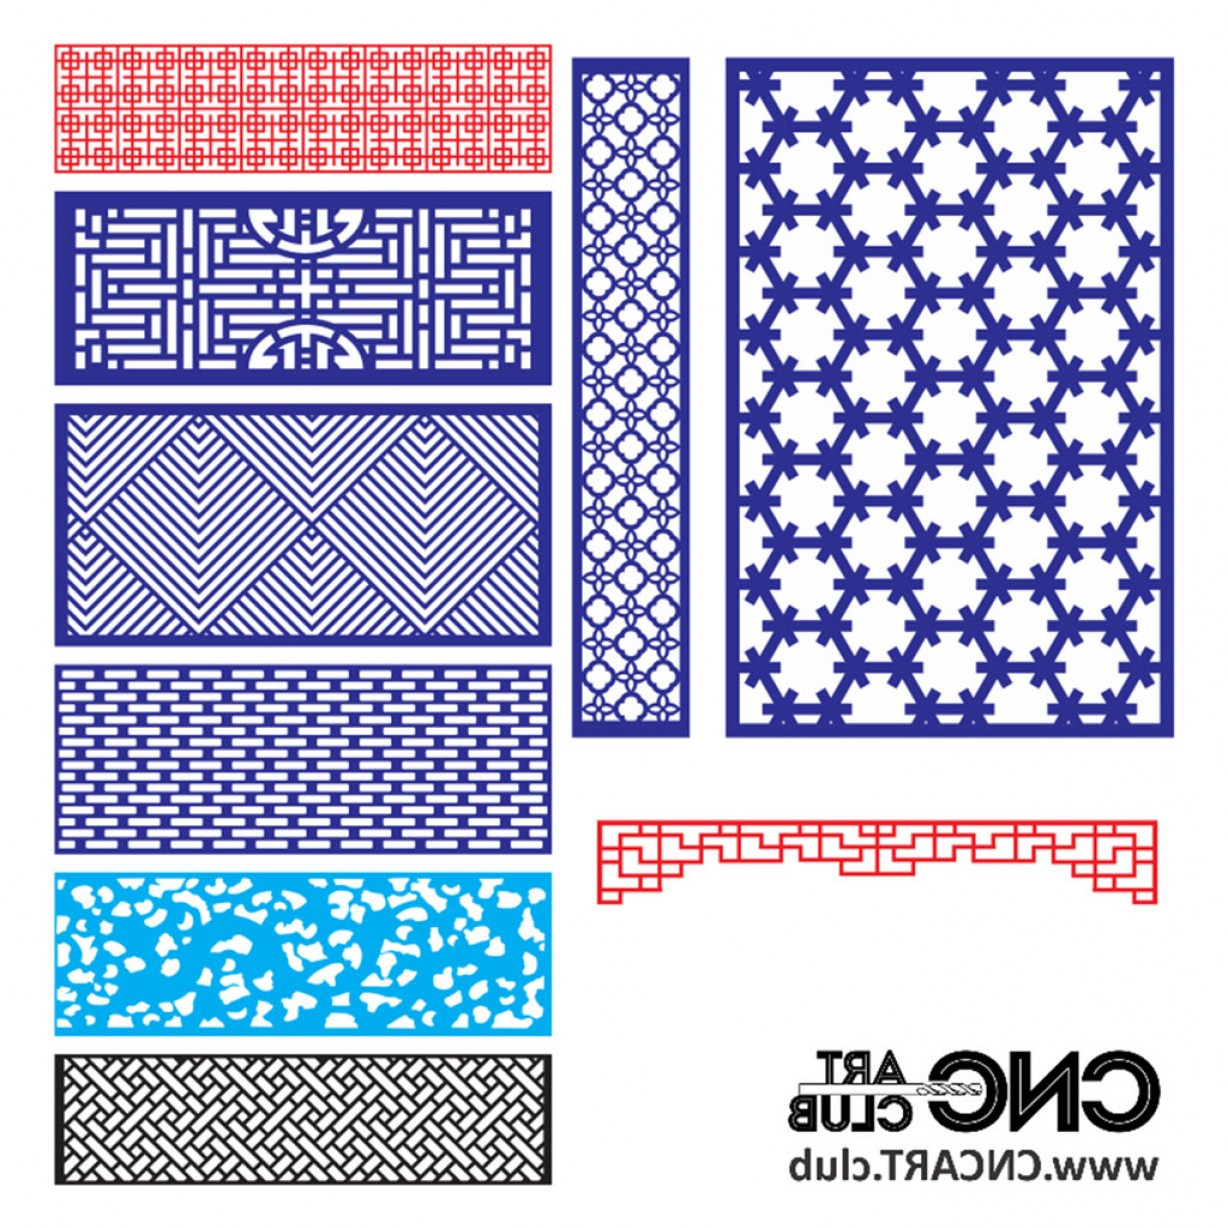 1228x1228 Free Download Vector Designs For Cnc Machines Decoratice Lattice